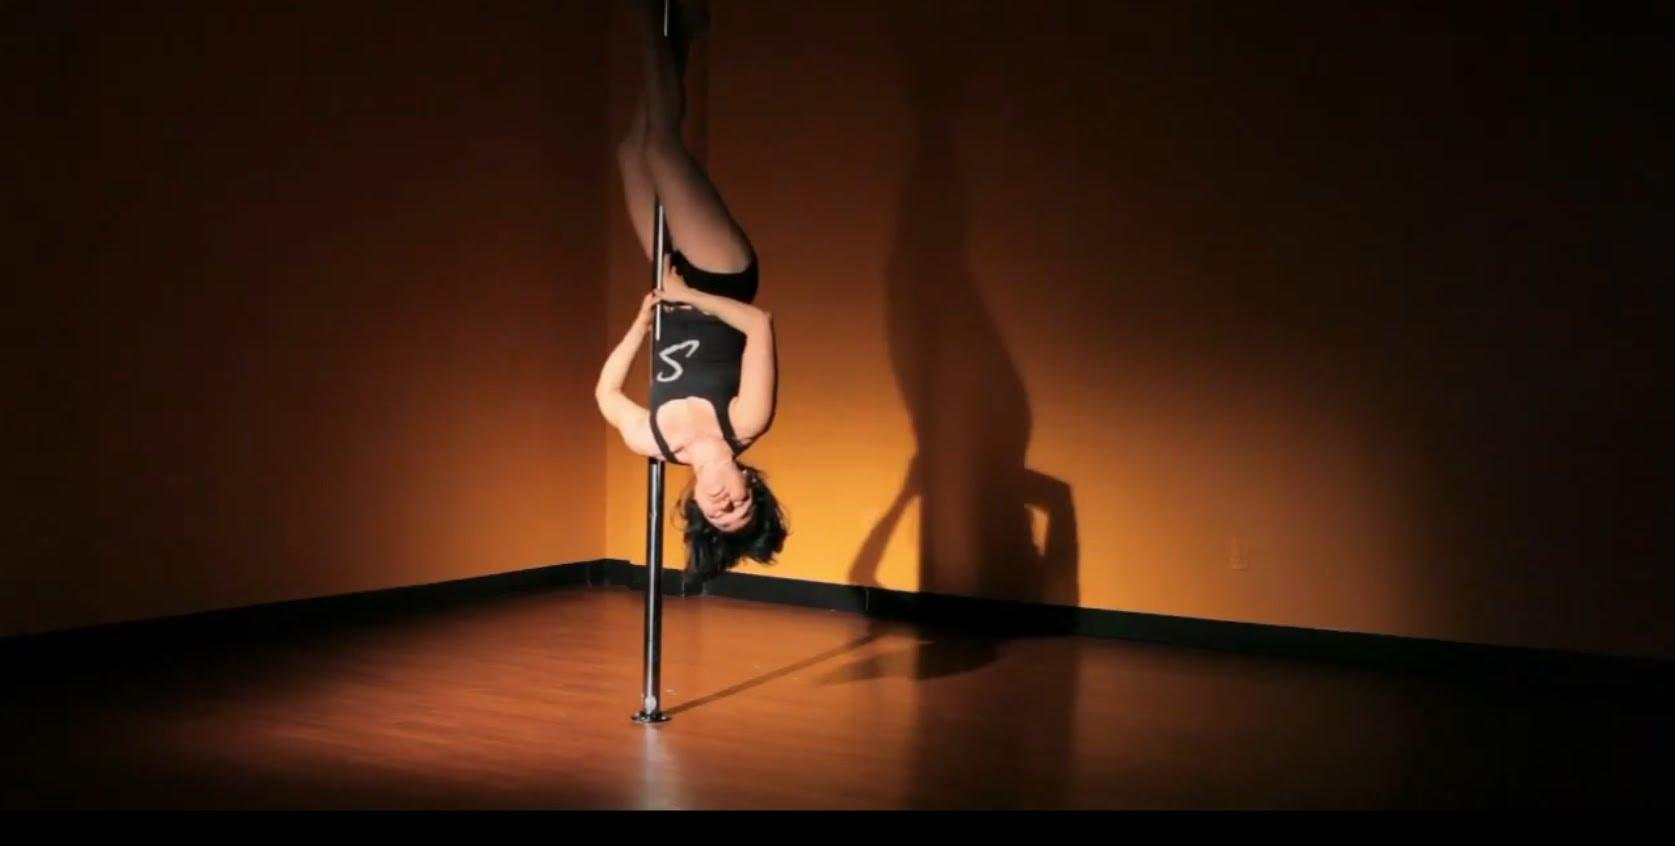 Intermediate Pole Dancing Moves How To Do A Basic Inversion